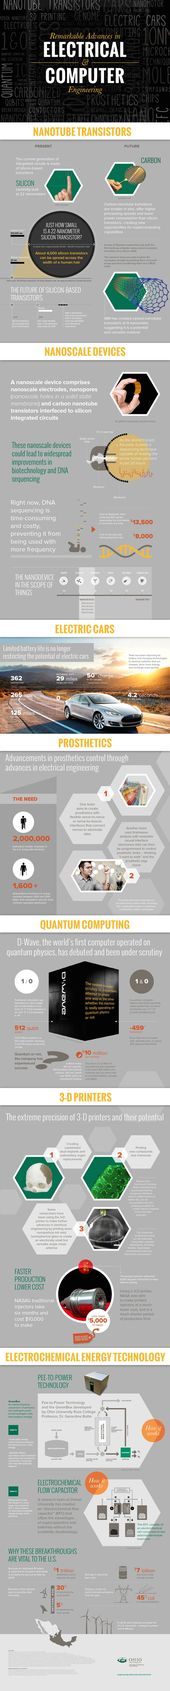 Best 25+ Computer engineering ideas on Pinterest Computer - computer engineer job description